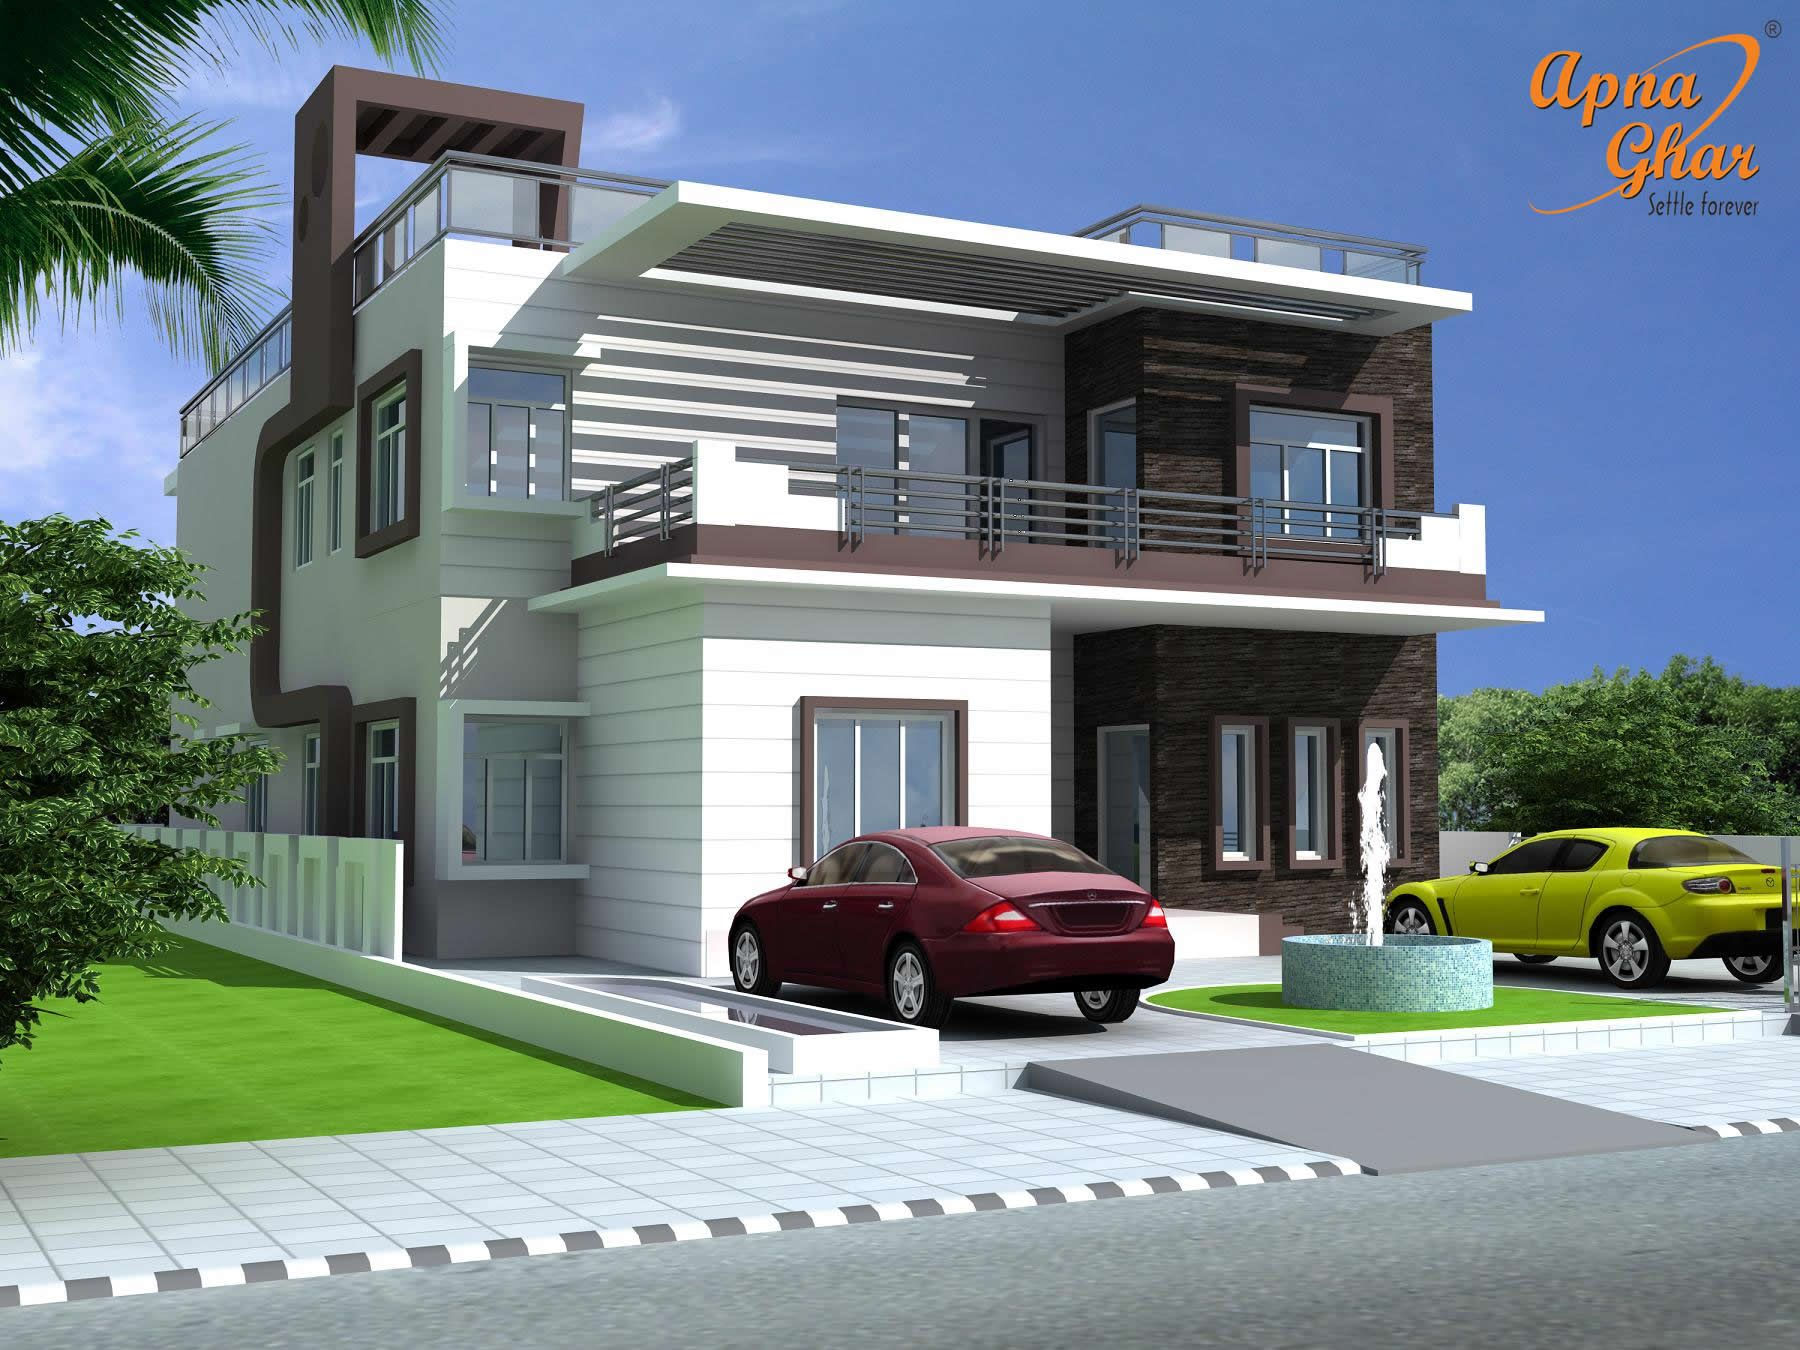 6 bedrooms duplex house design in 390m2 13m x 30m click for Front elevations of duplex houses